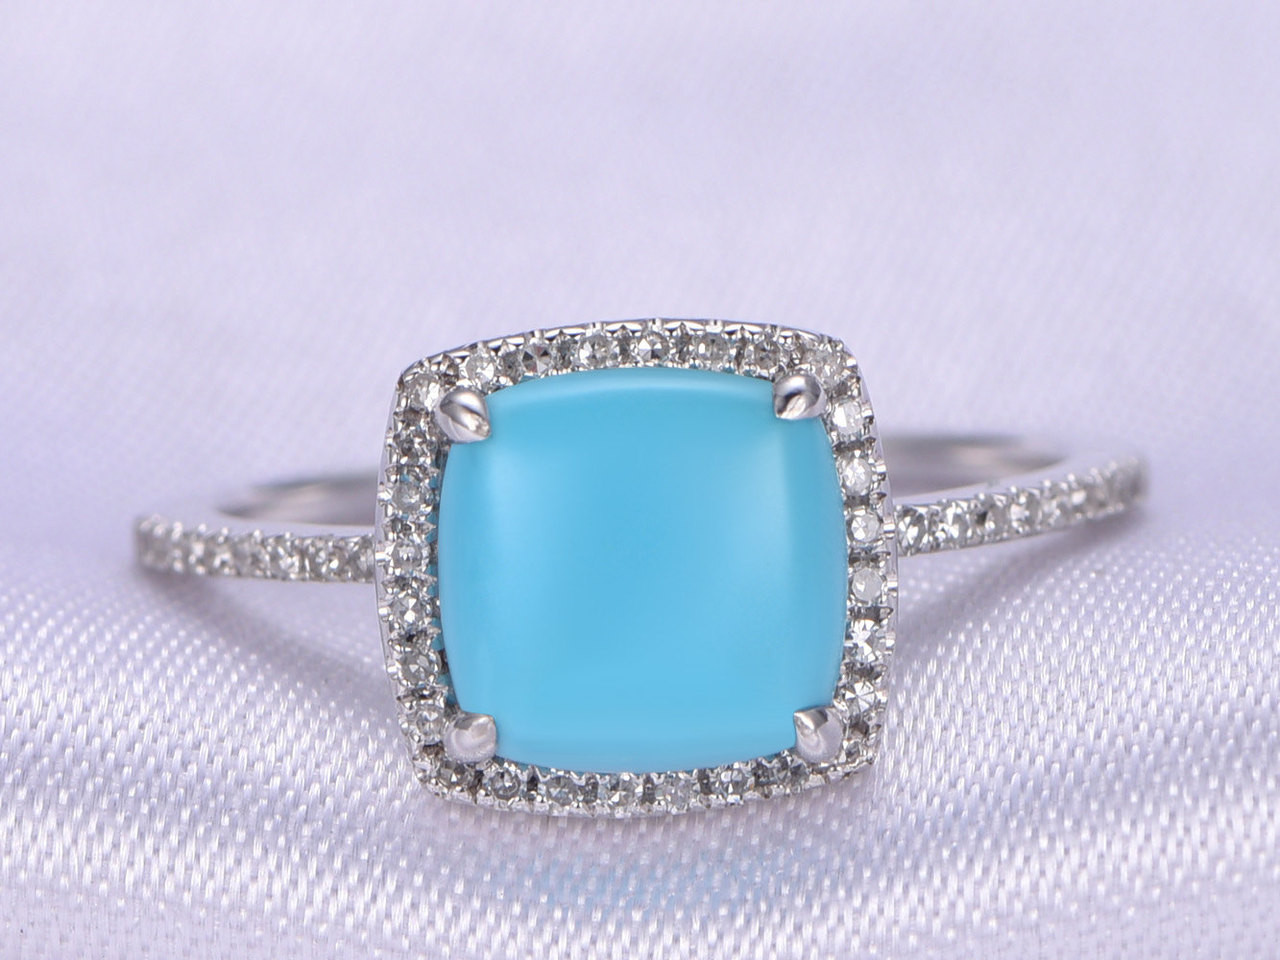 Sleeping Beauty Turquoise Ring8mm Cushion Cut Turquoise Engagement